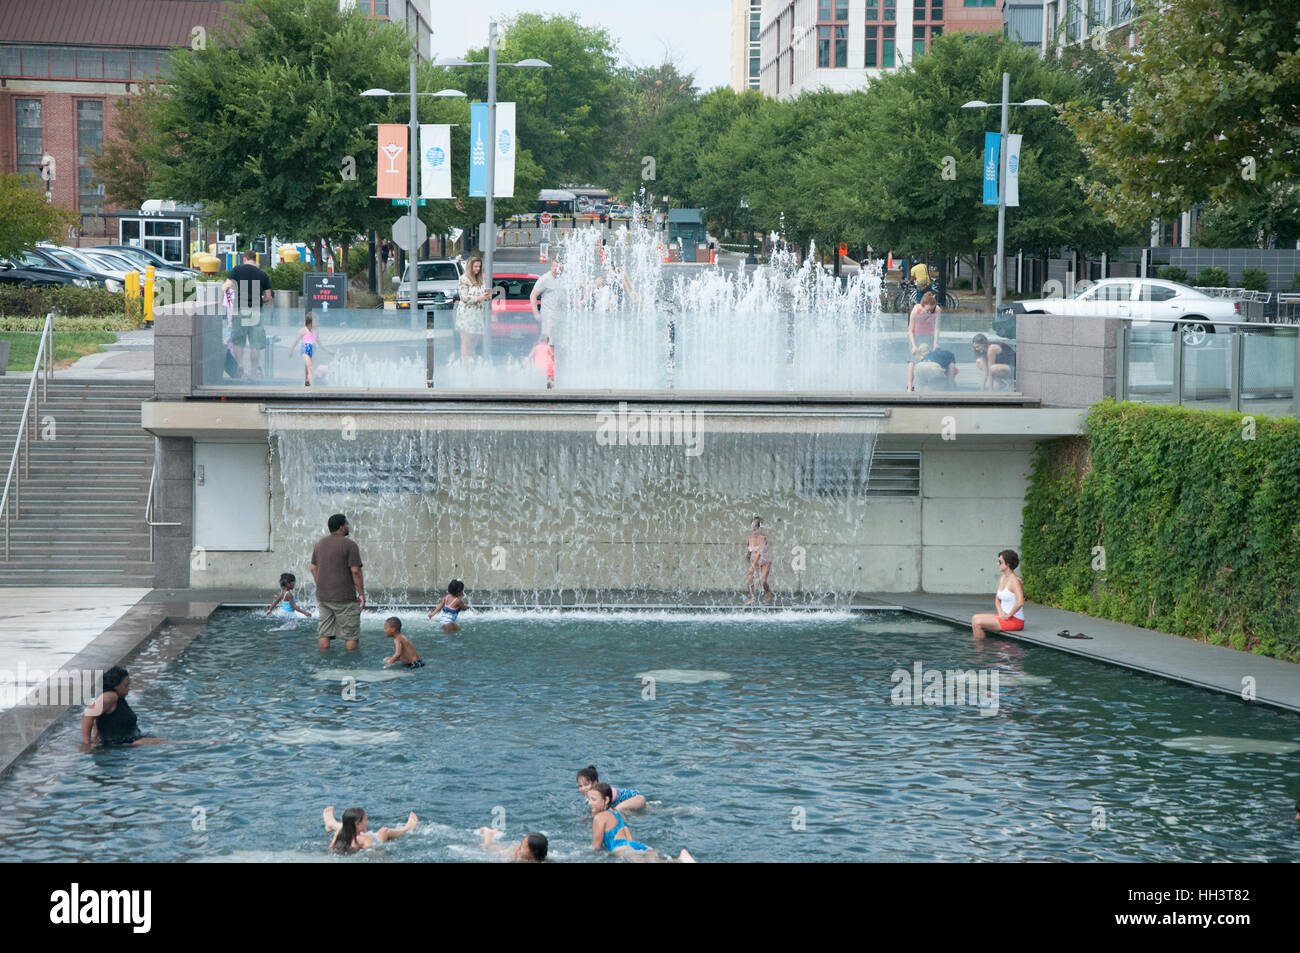 People are splashing in pool at Yards Park in the summer in Washington, DC Stock Photo